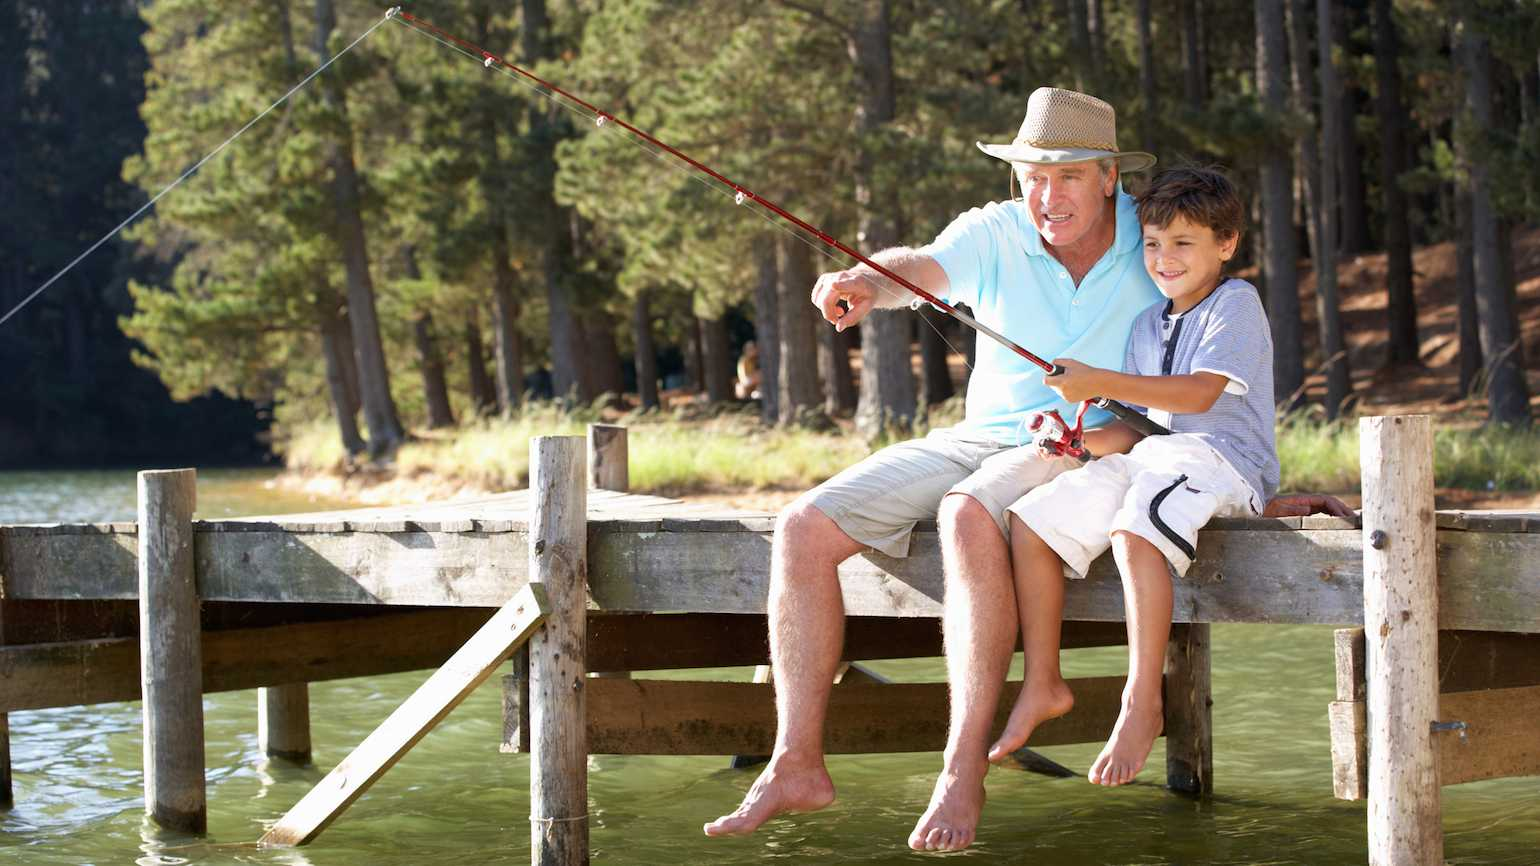 Fishing with grandkid